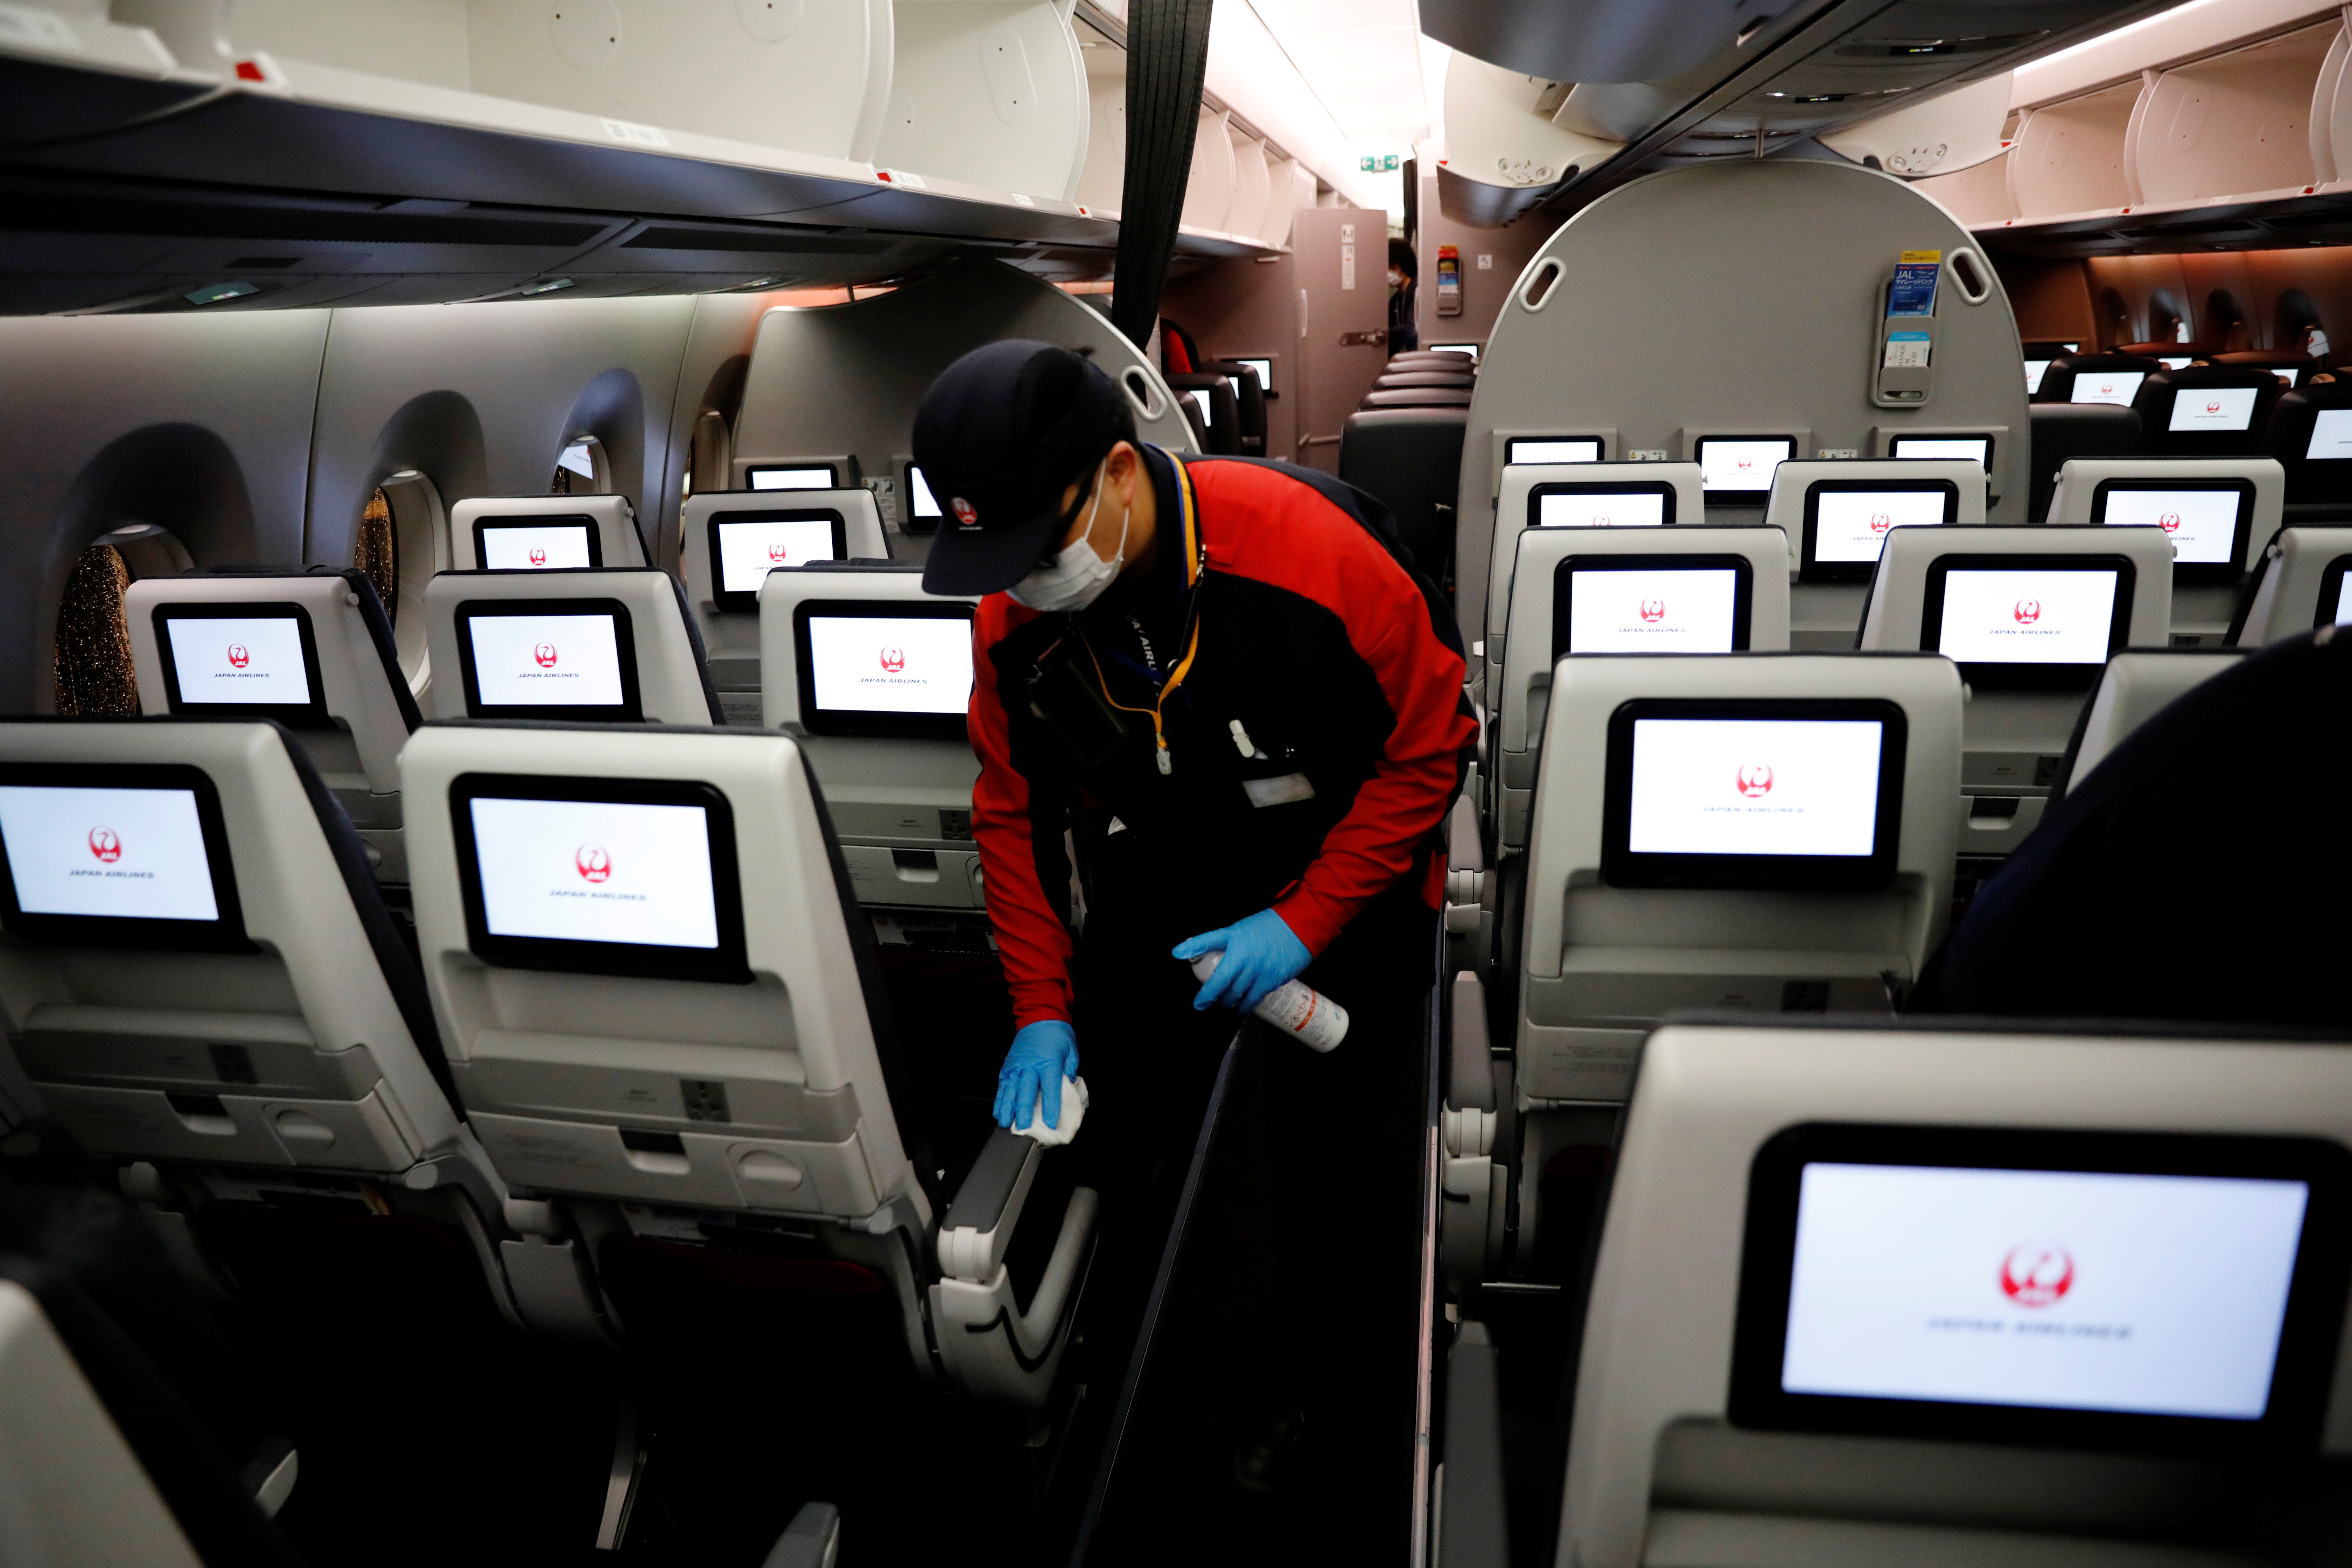 A staff member of Japan Airlines wearing a protective face mask and gloves cleans the cabin of a plane which performed a domestic flight, amid the coronavirus disease (COVID-19) outbreak at Haneda airport in Tokyo, Japan May 26, 2020. Picture taken May 26, 2020. REUTERS/Kim Kyung-Hoon - RC262H9ILONT